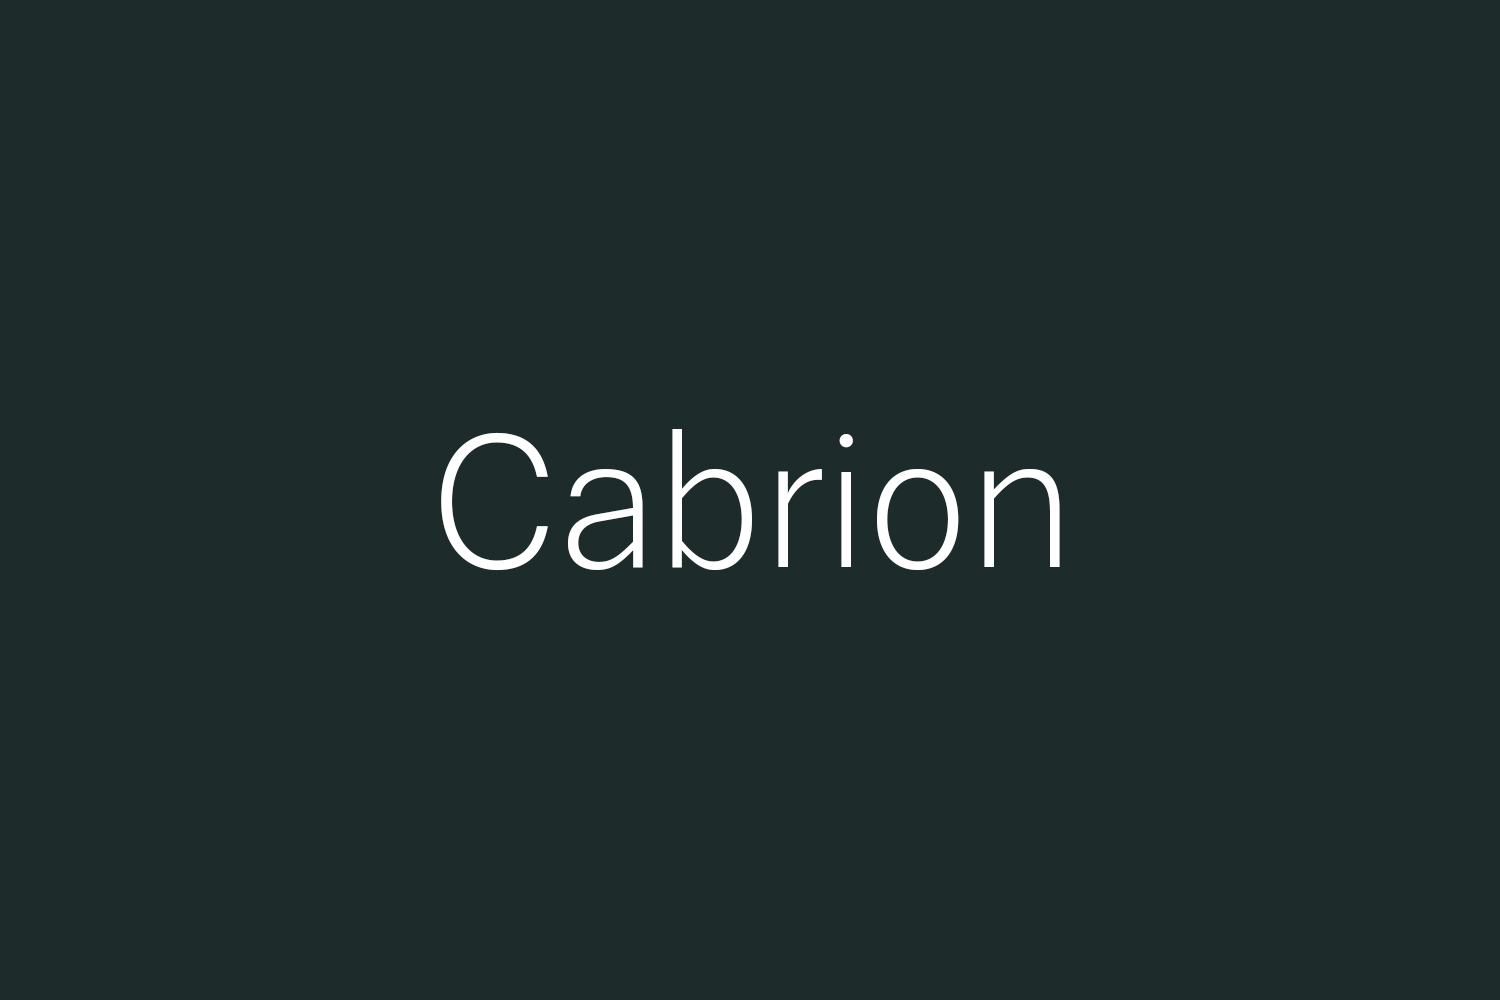 Cabrion Free Font